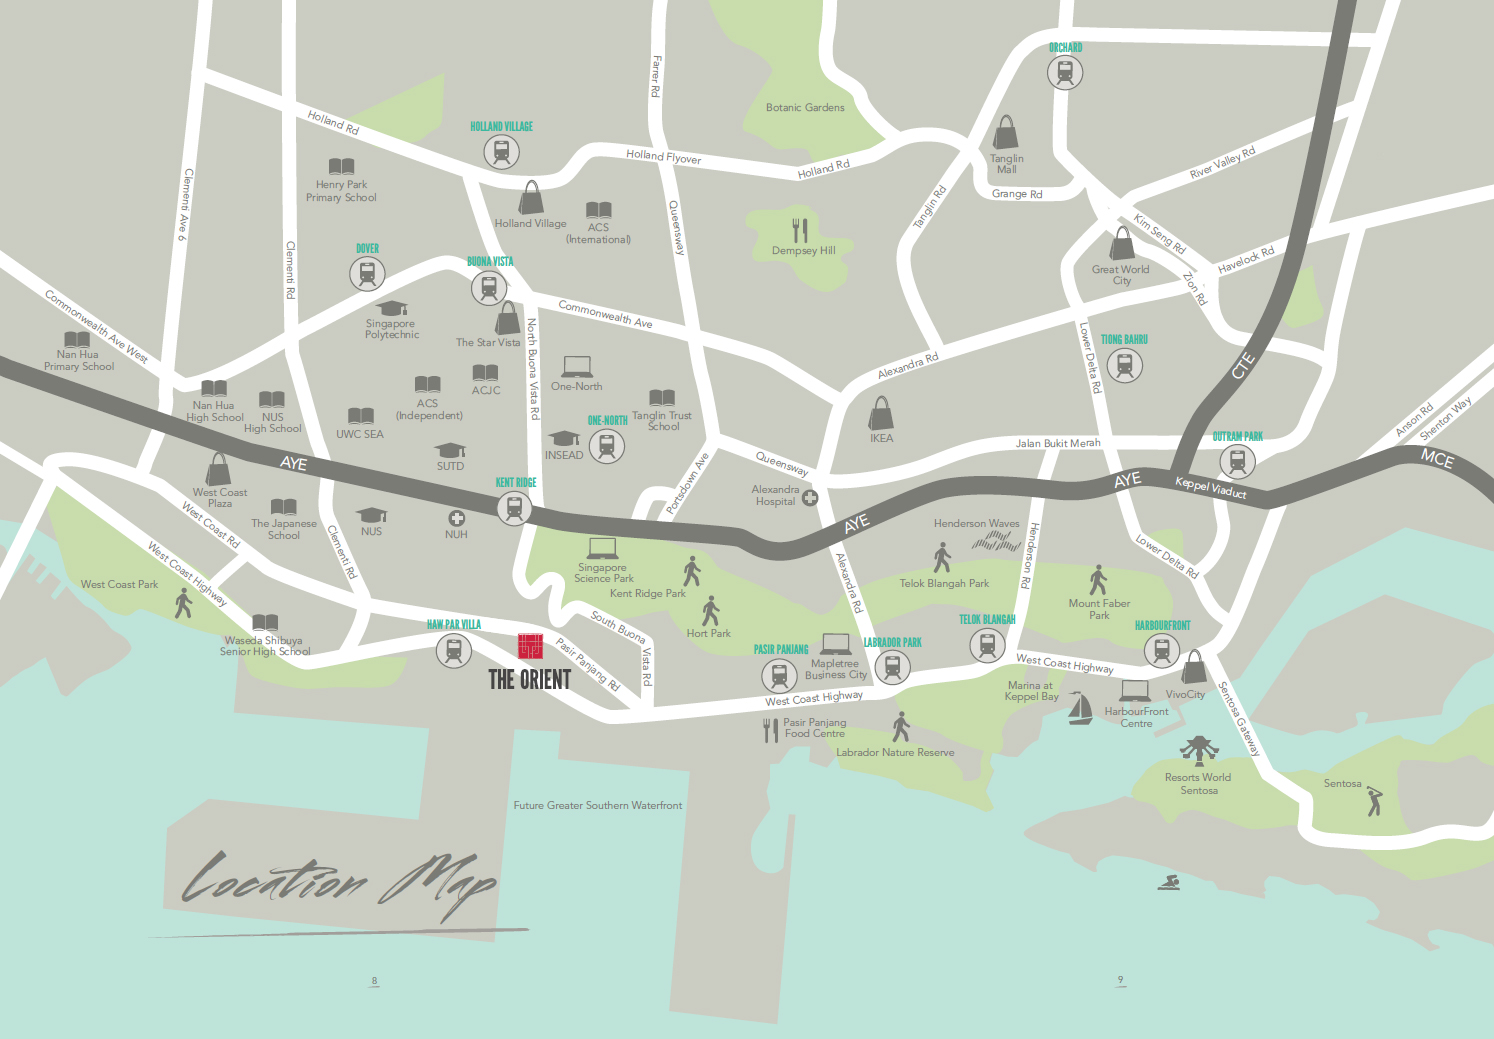 The-Orient-location-map2